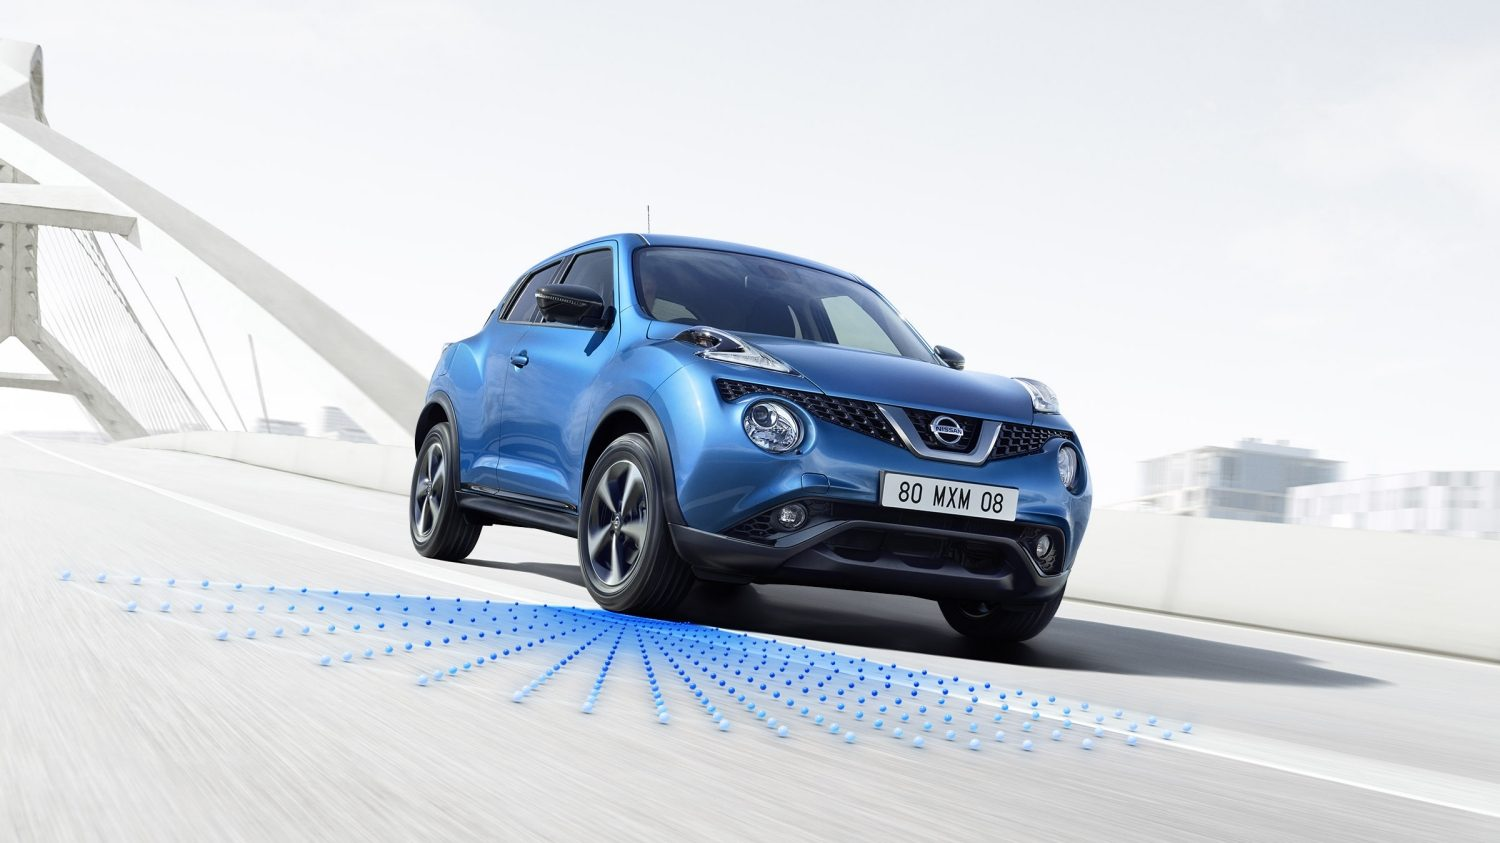 Nissan-Juke-2018-Rear-View-Lane-Departure